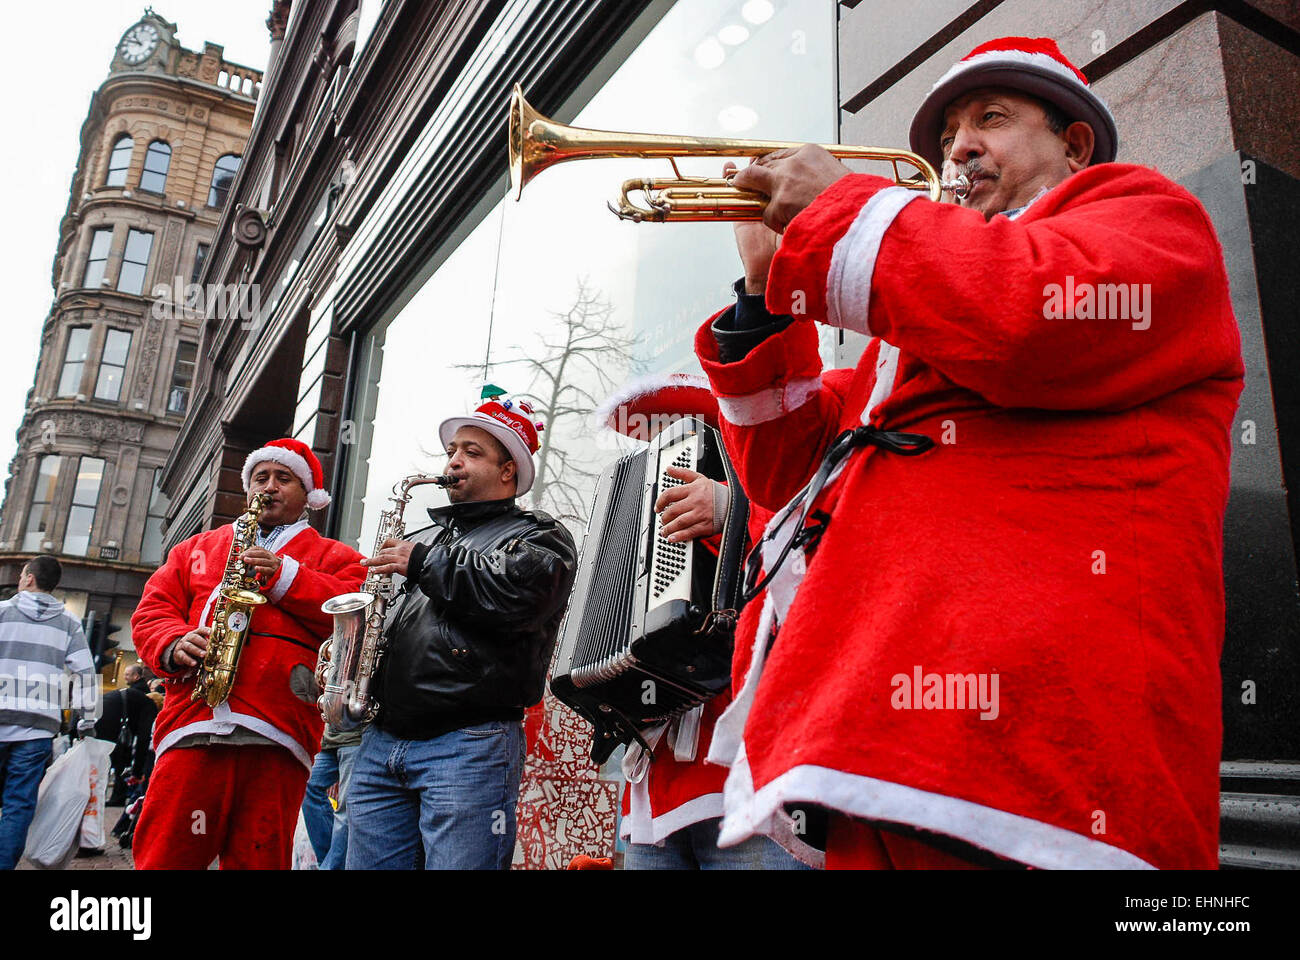 Play Christmas Music.Musicians Play Christmas Music On A Street In Belfast